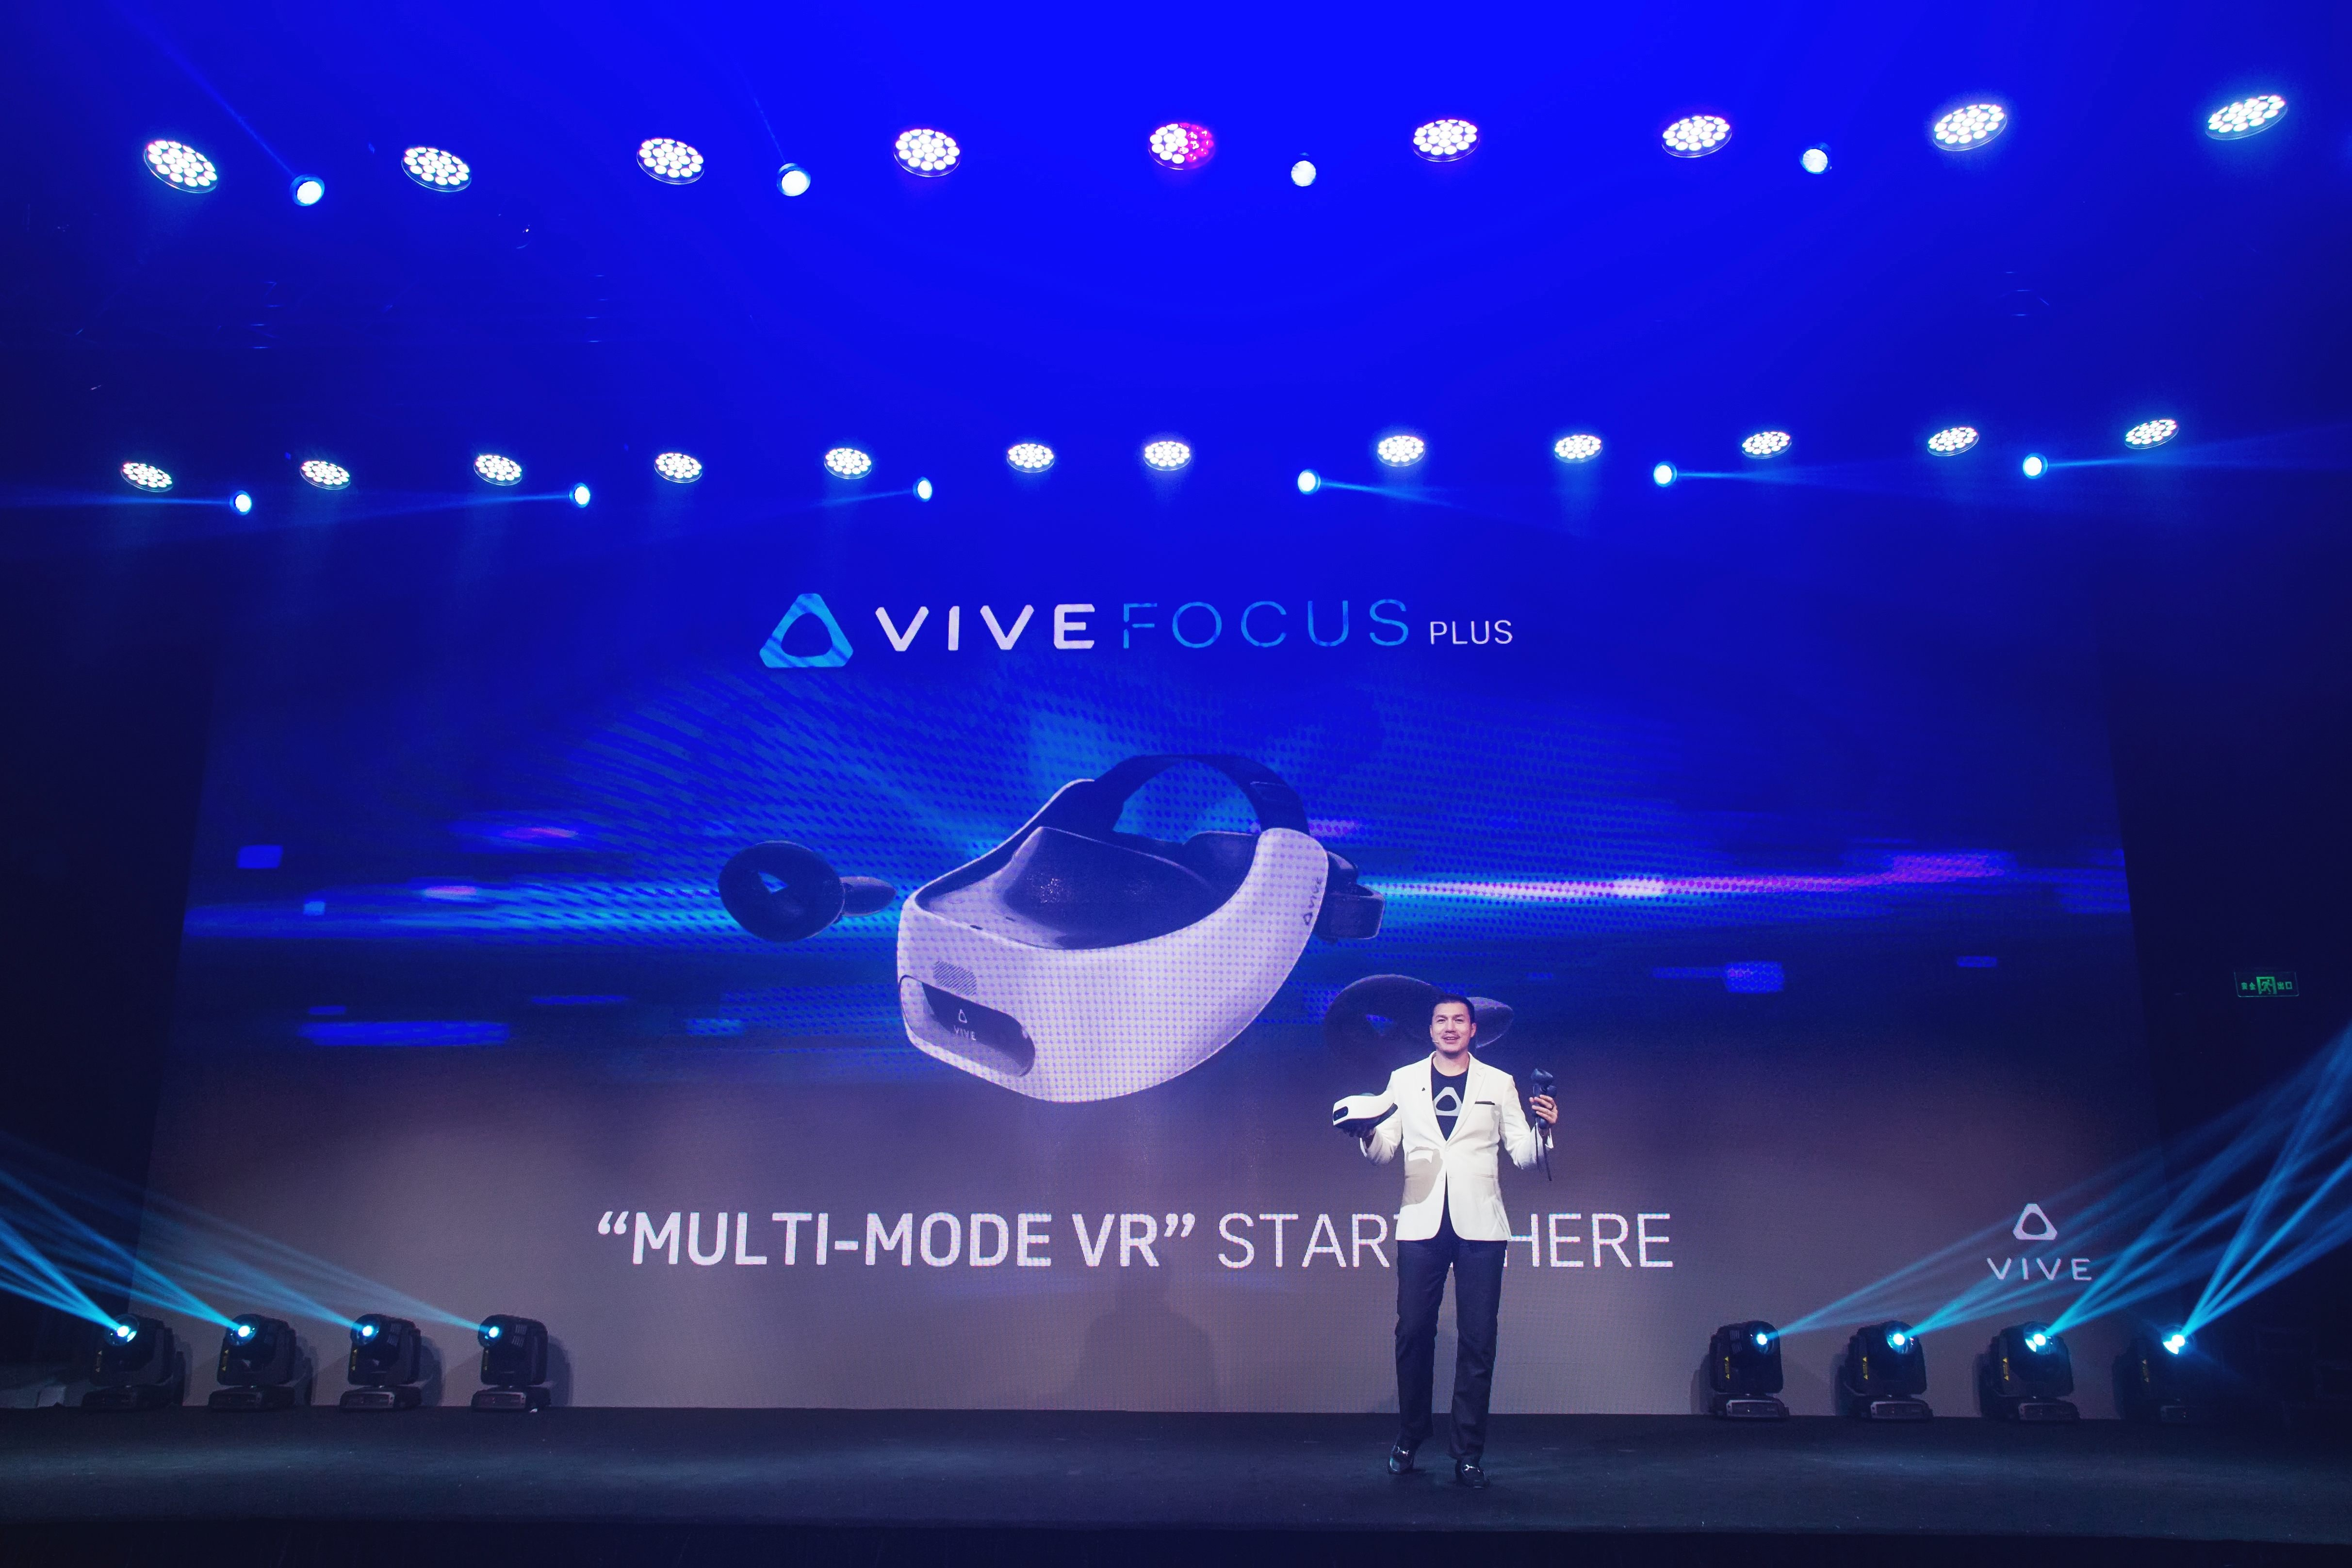 Vive Focus Plus VR HTC HMD price availability Ecosystem Conference